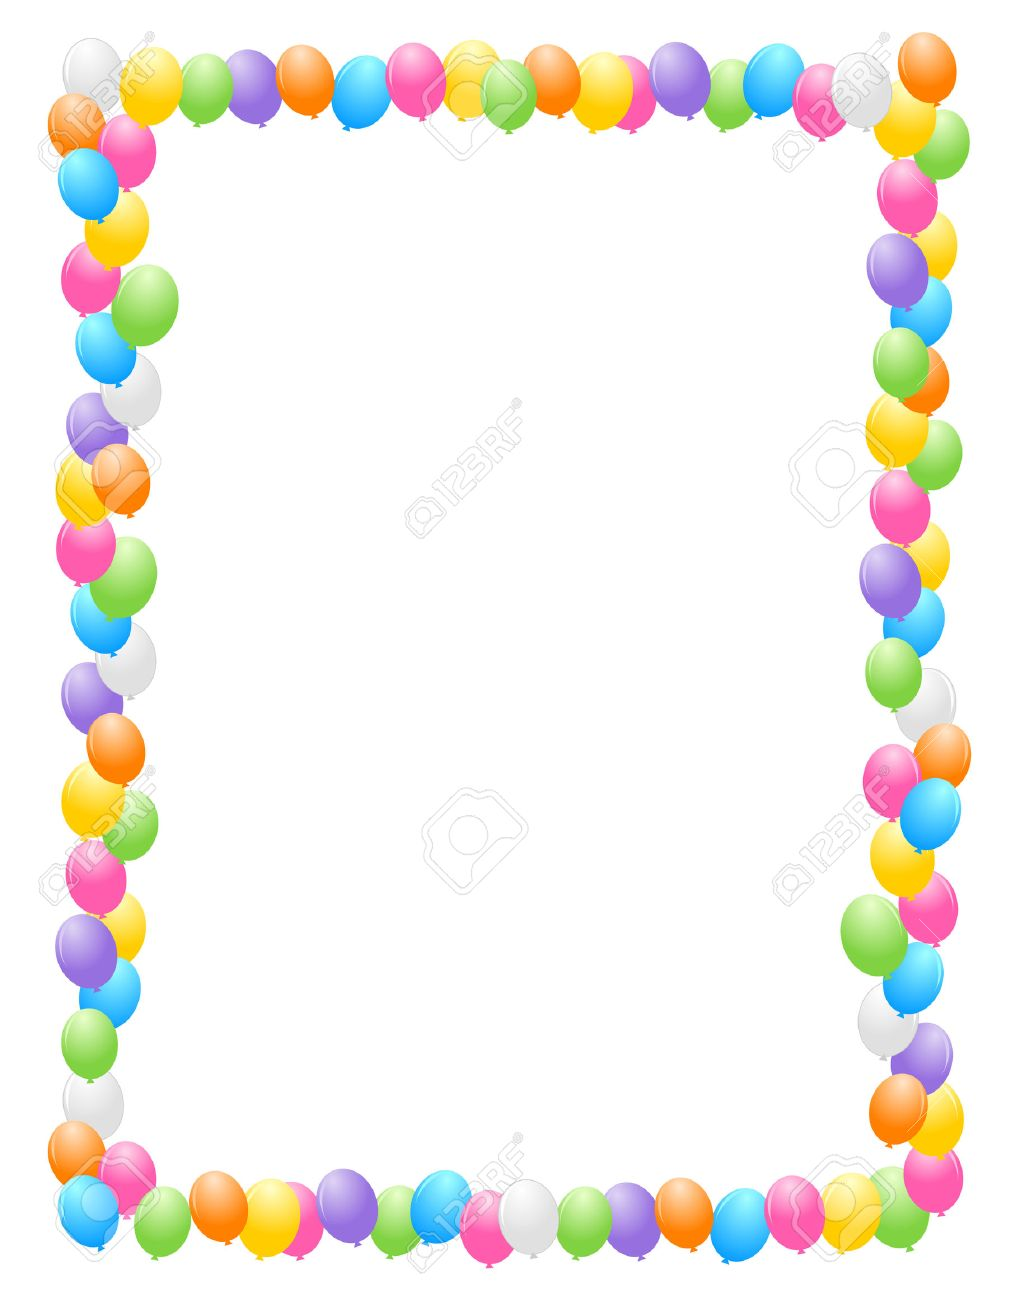 happy birthday card borders ; 38545900-colorful-balloons-border-frame-illustration-for-birthday-cards-and-party-backgrounds